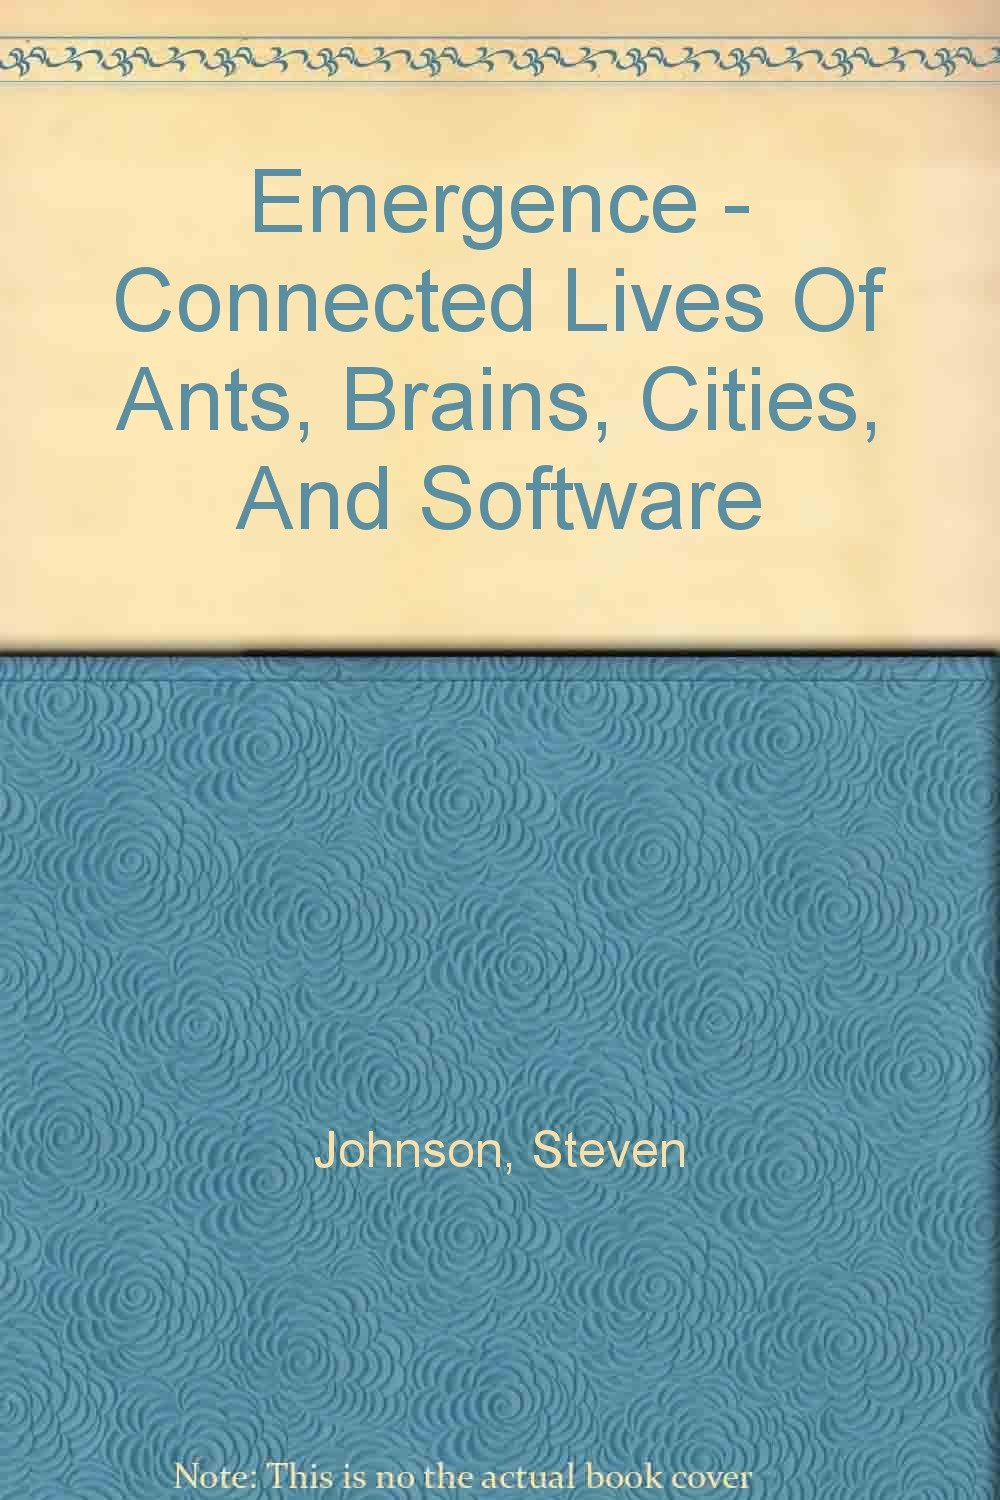 Download Emergence - Connected Lives Of Ants, Brains, Cities, And Software PDF